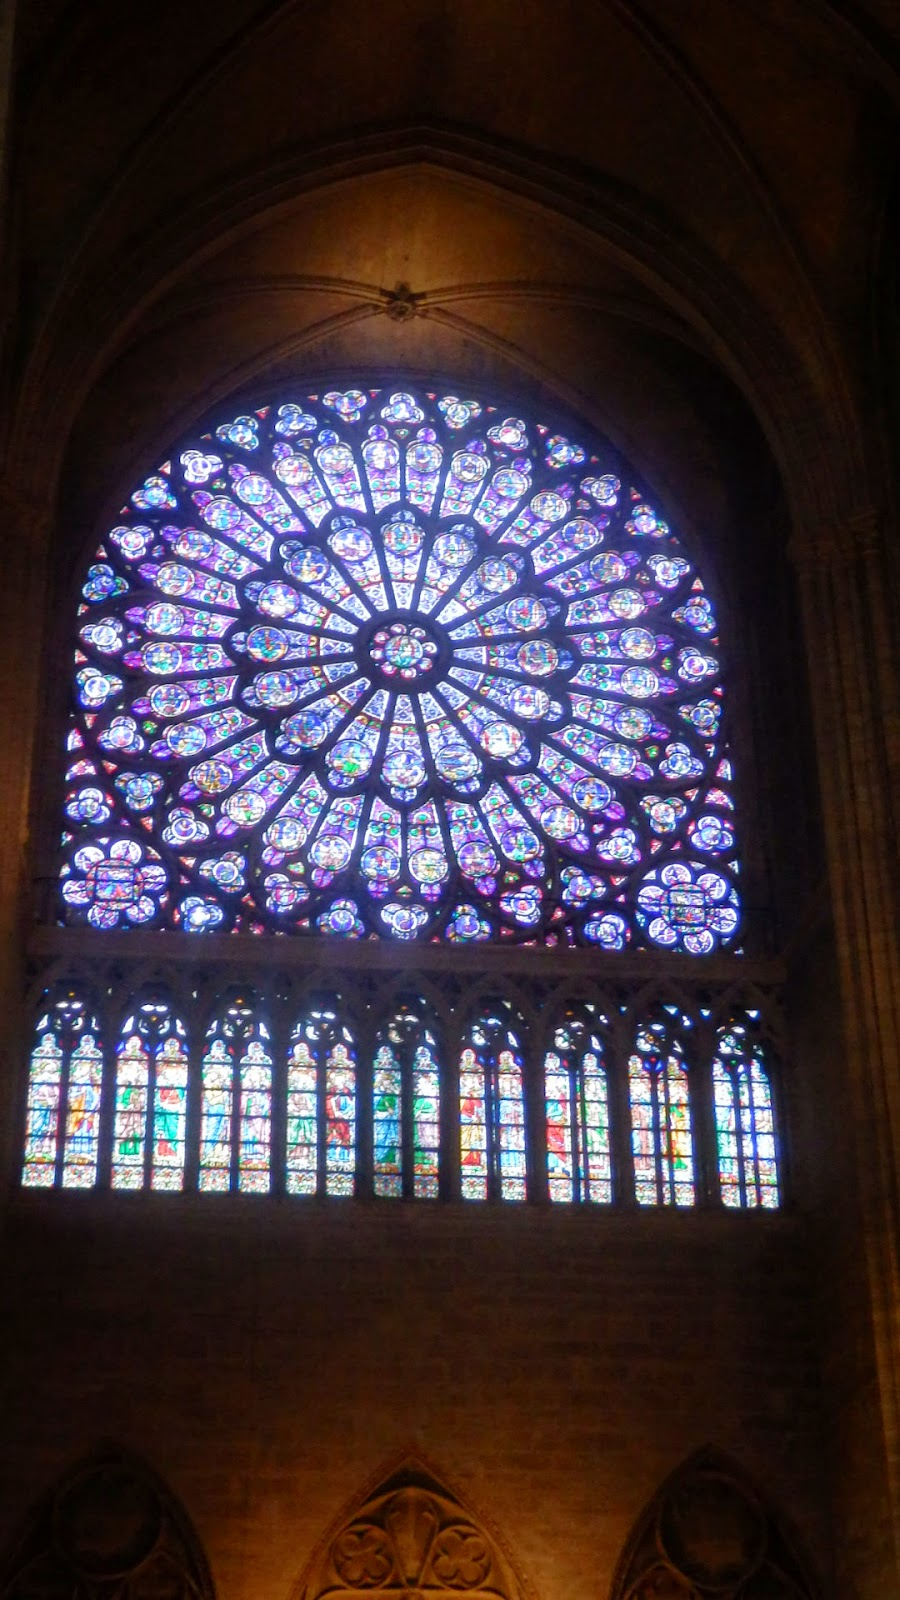 Photo taken inside the Notre Dame Paris